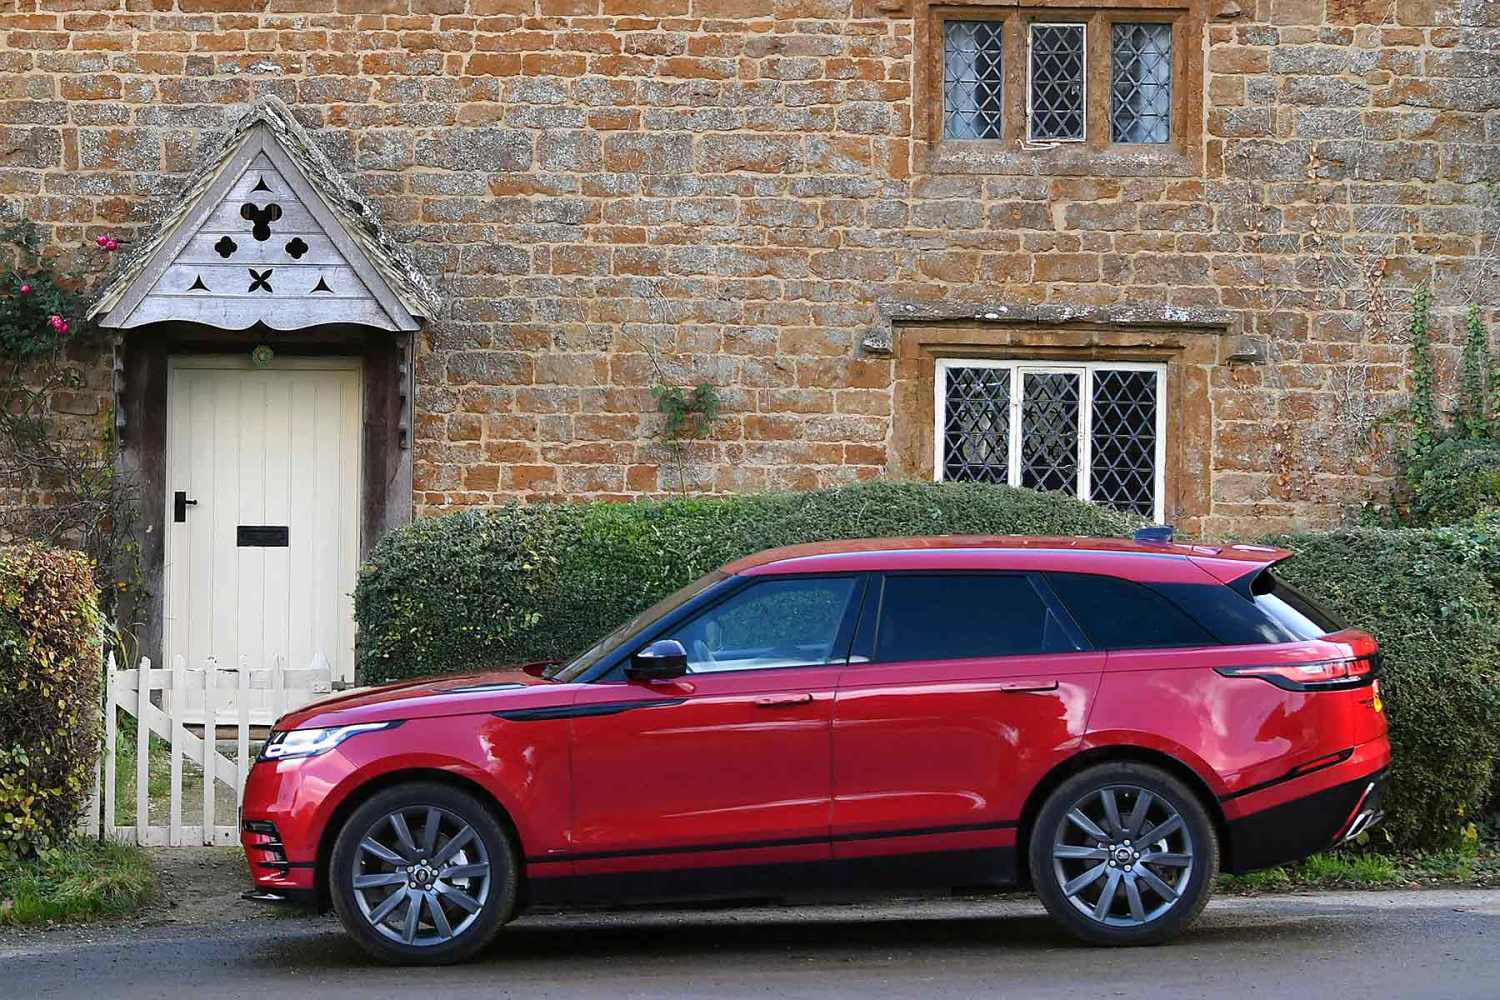 The Range Rover Velar is now cheaper and greener | Motoring Research